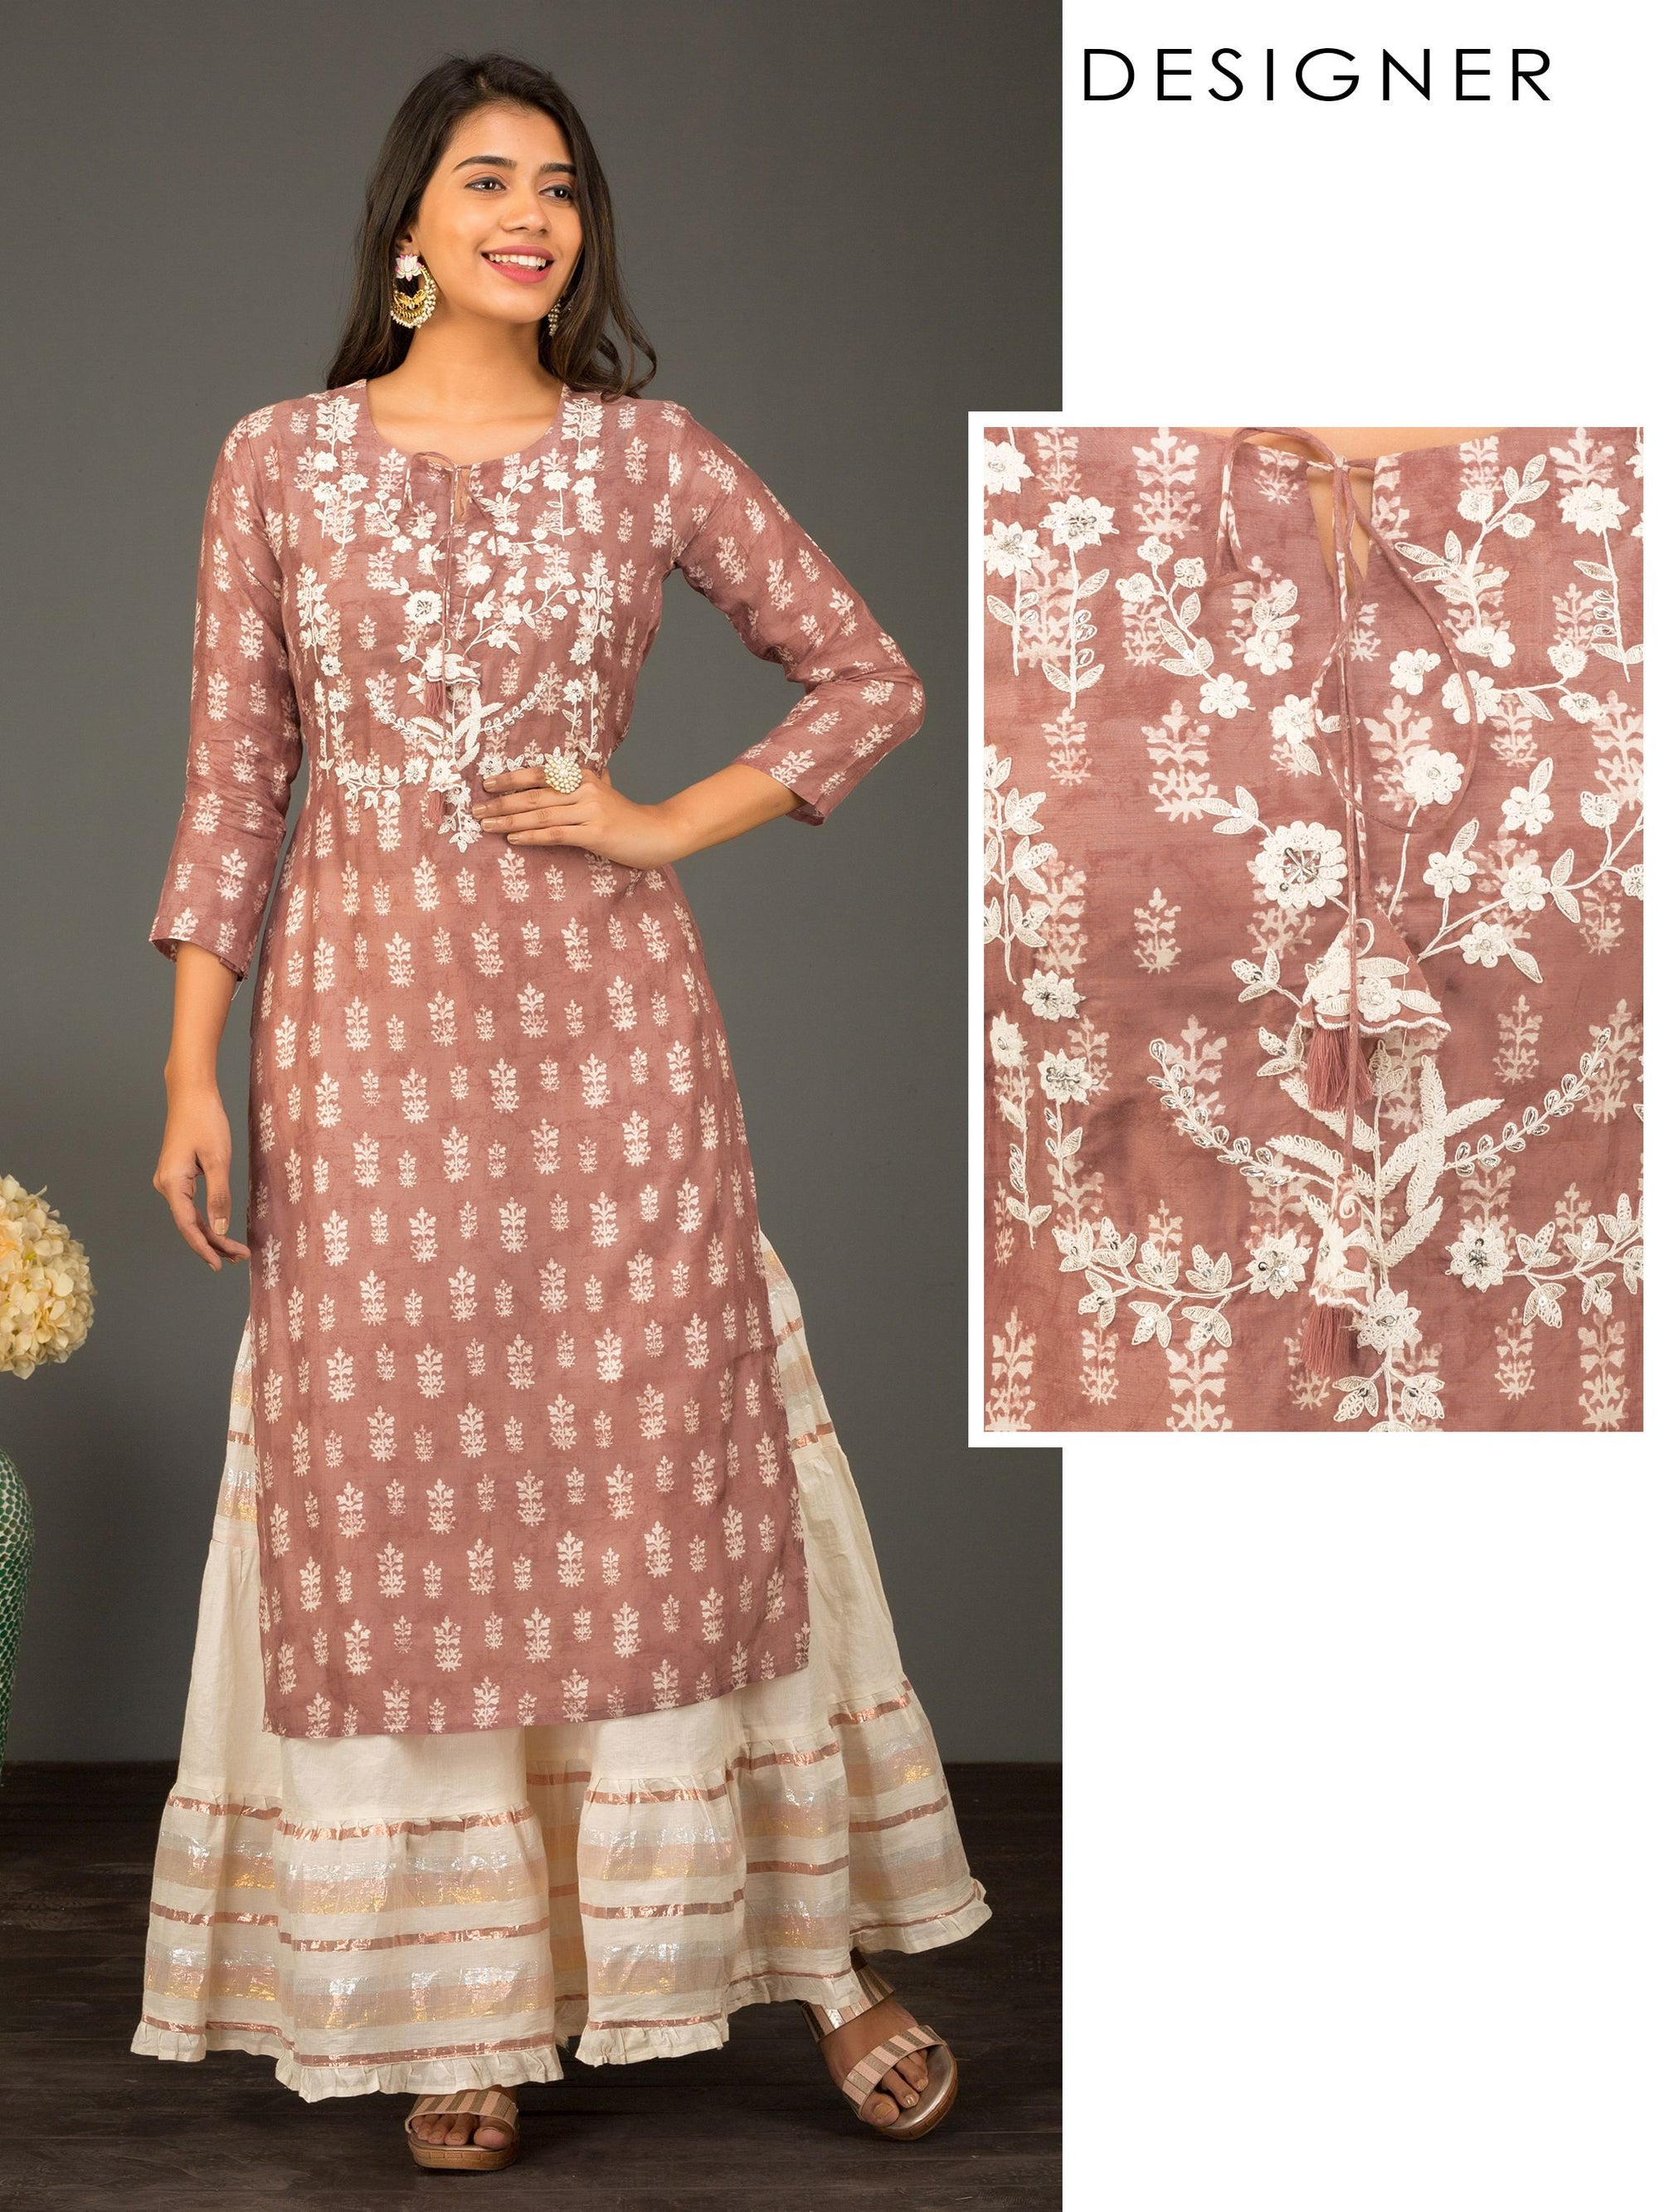 Floral Printed & Cord Embroidered Designer Kurti – Rusty Brown